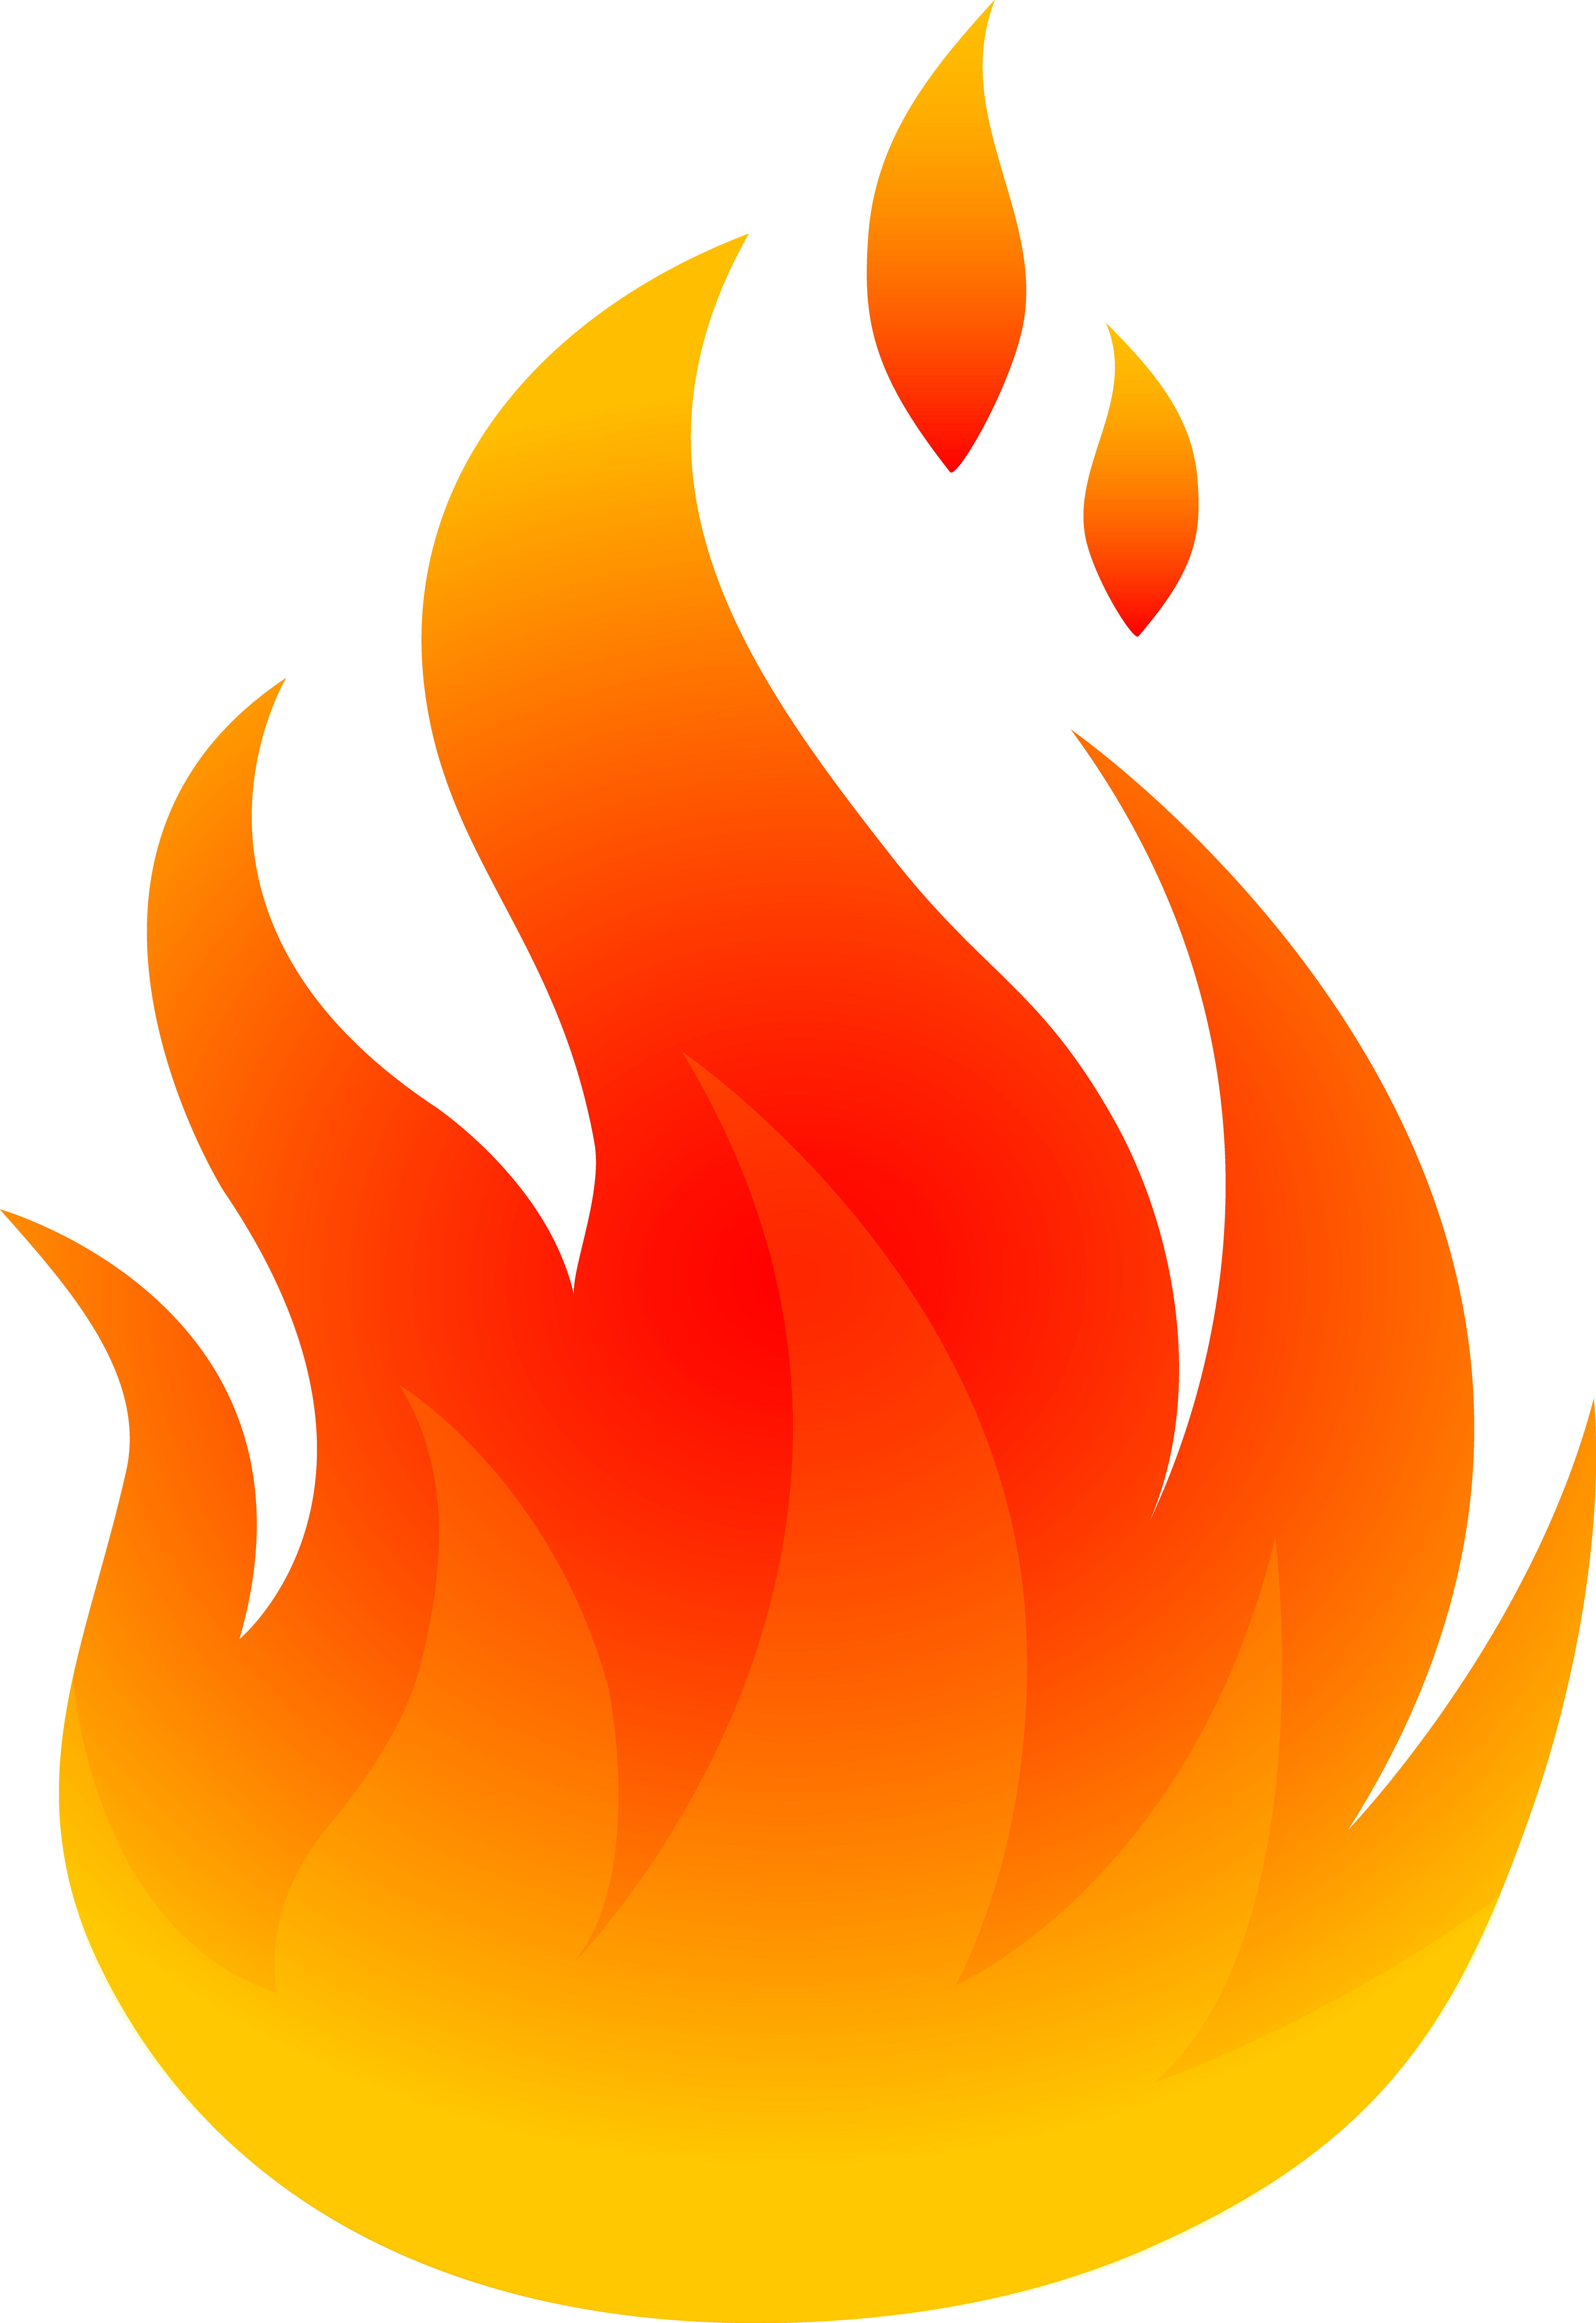 Flame Vector Art - Cliparts.co